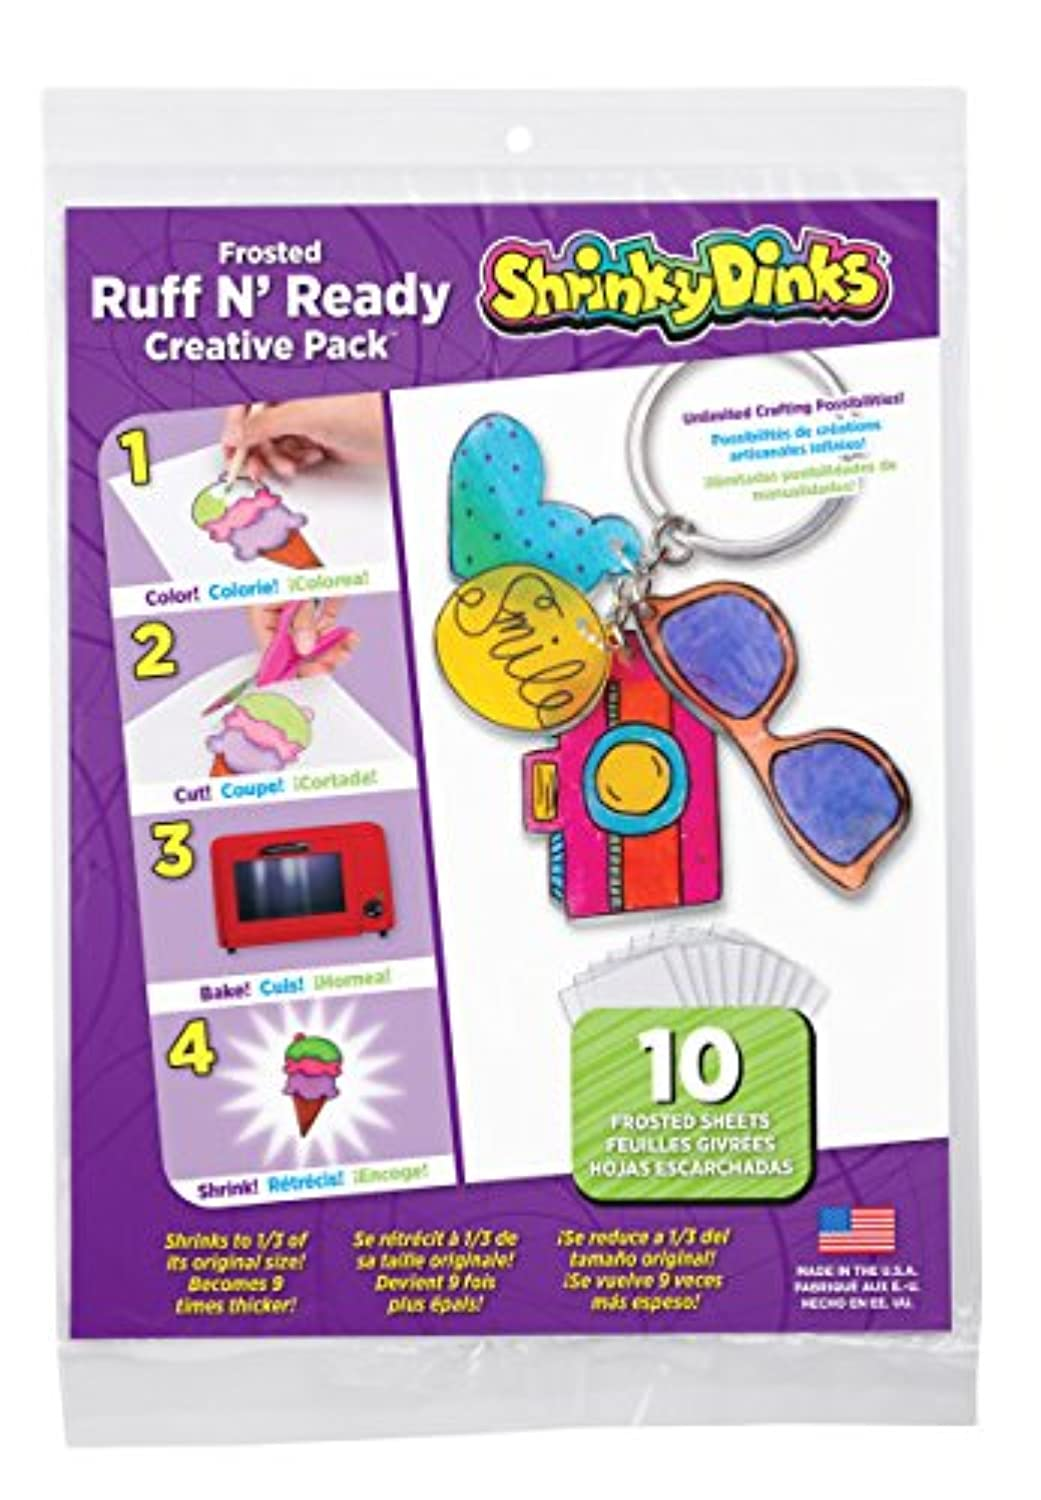 Shrinky Dinks Frosted Ruff n' Ready -10pc